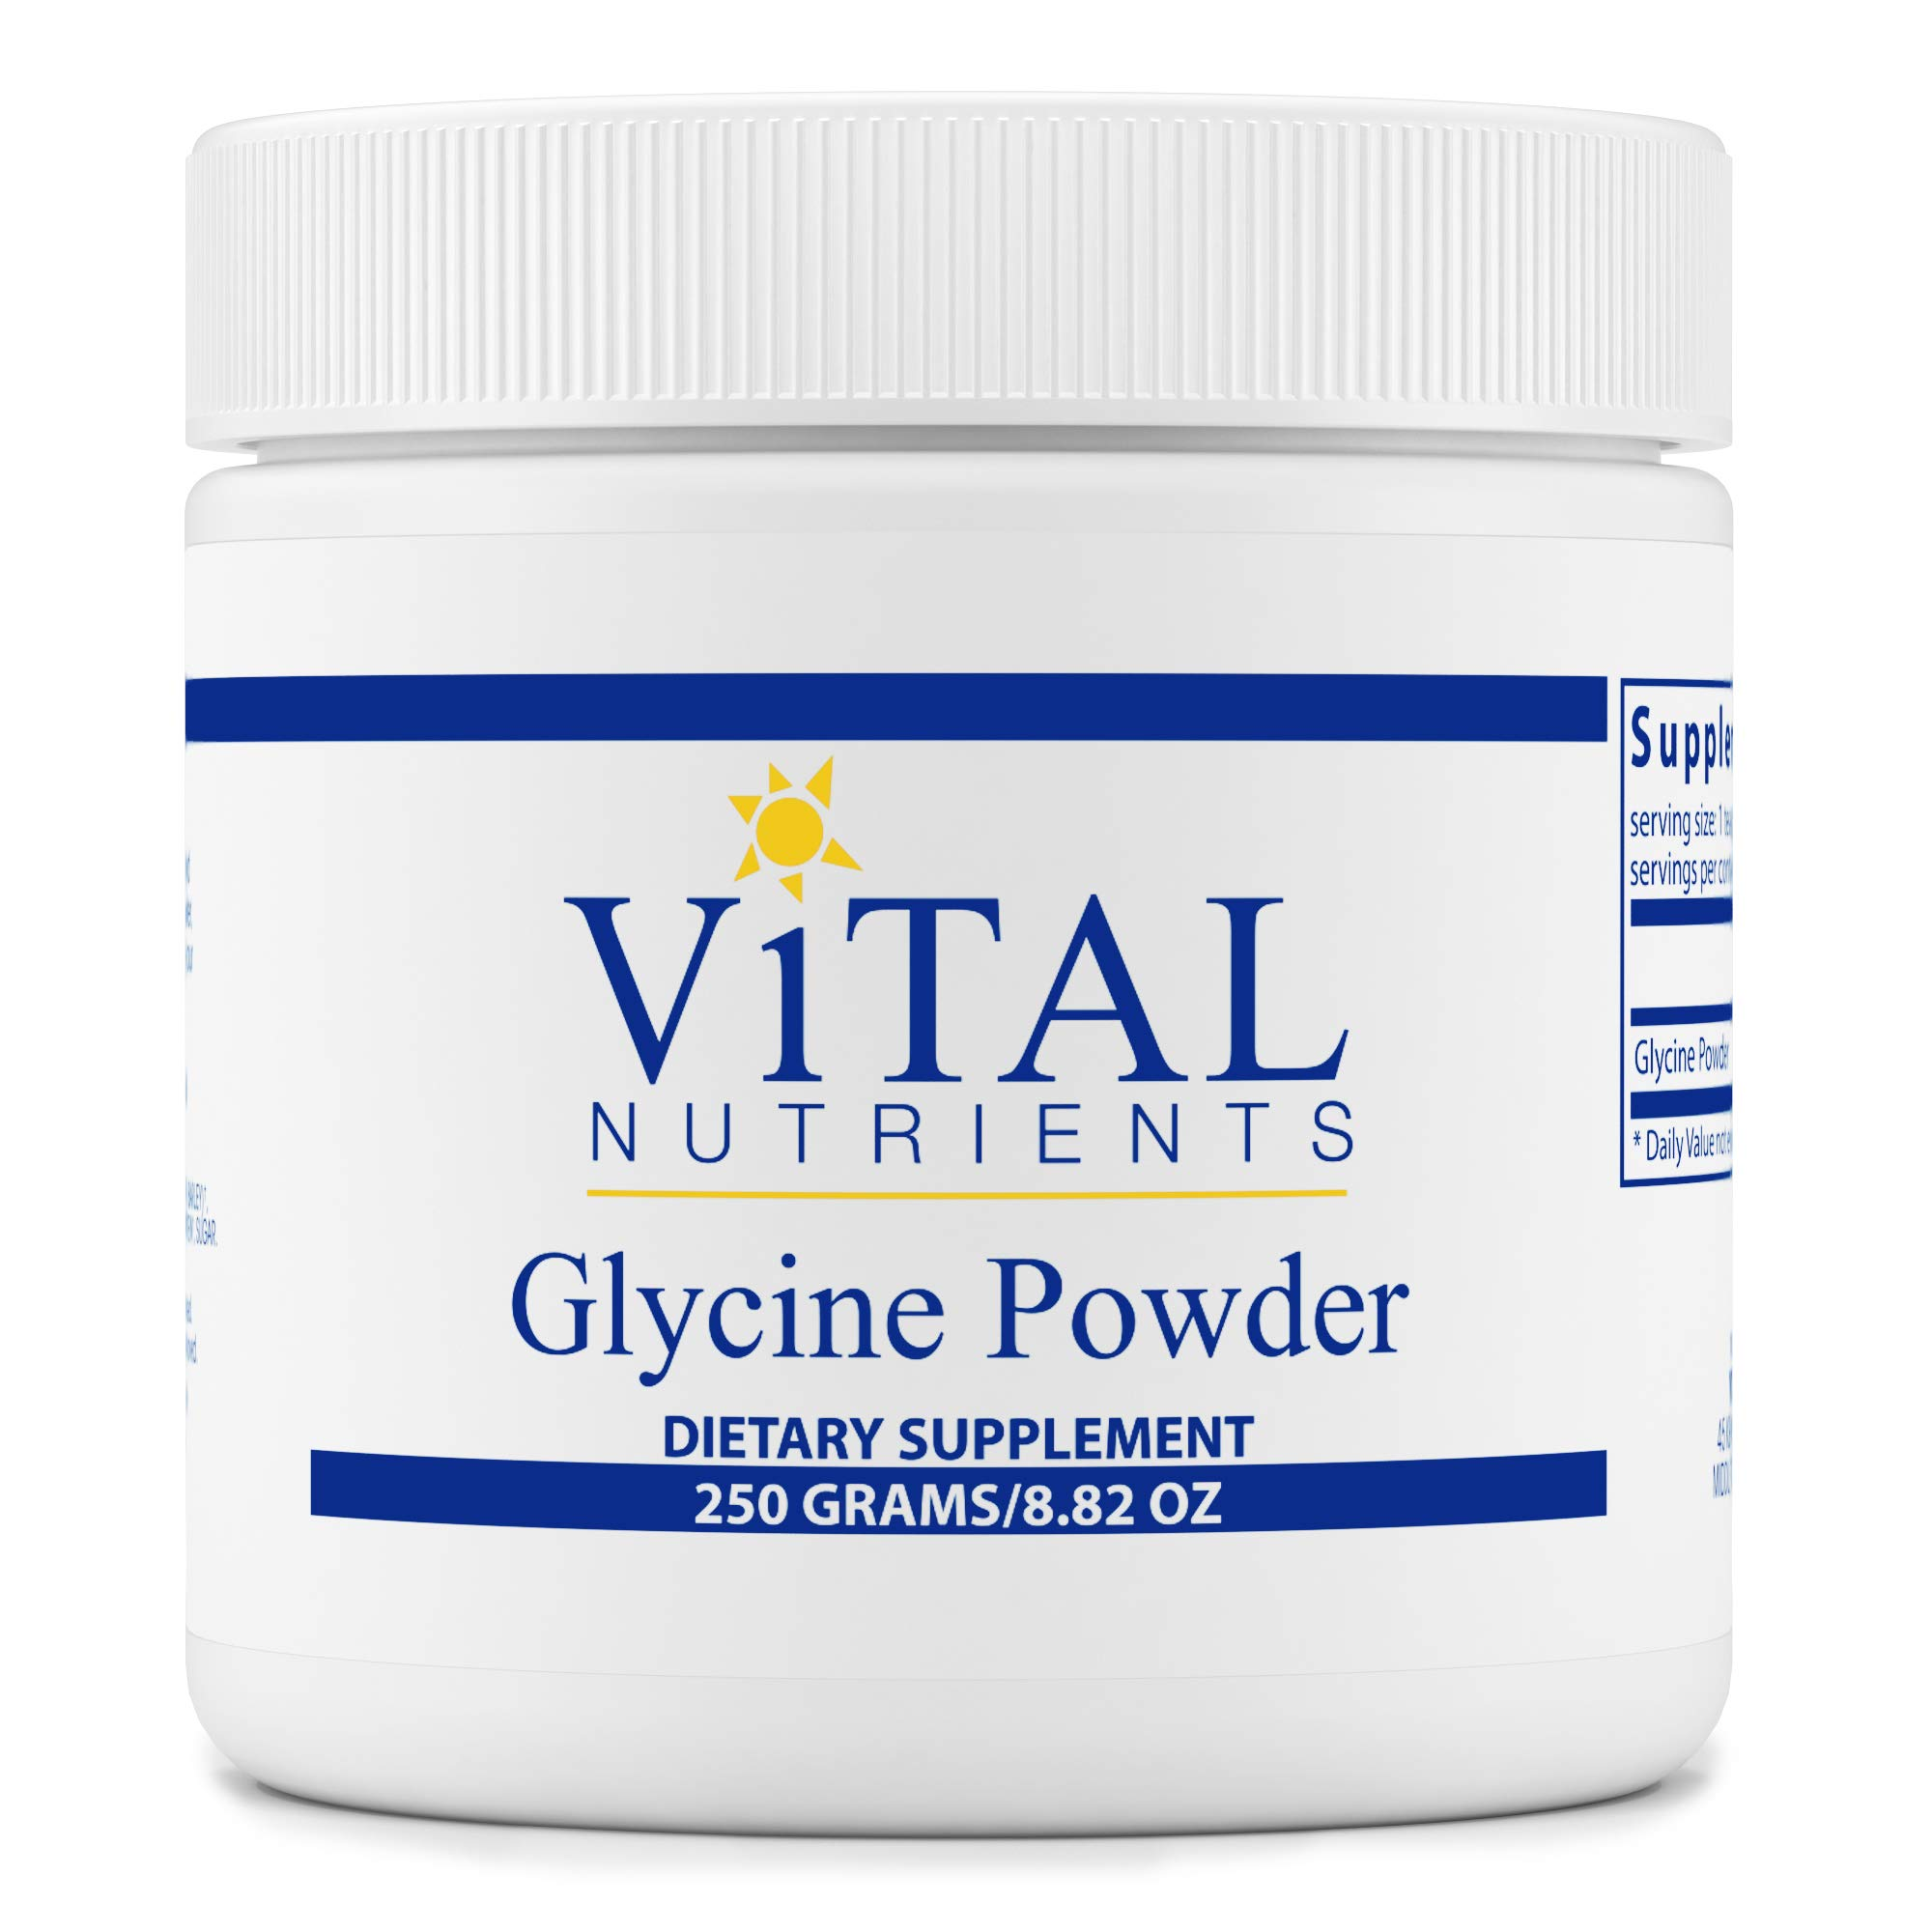 Vital Nutrients - Glycine Powder - Healthy Memory and Cognitive Support - Vegetarian - 250 Grams per Bottle